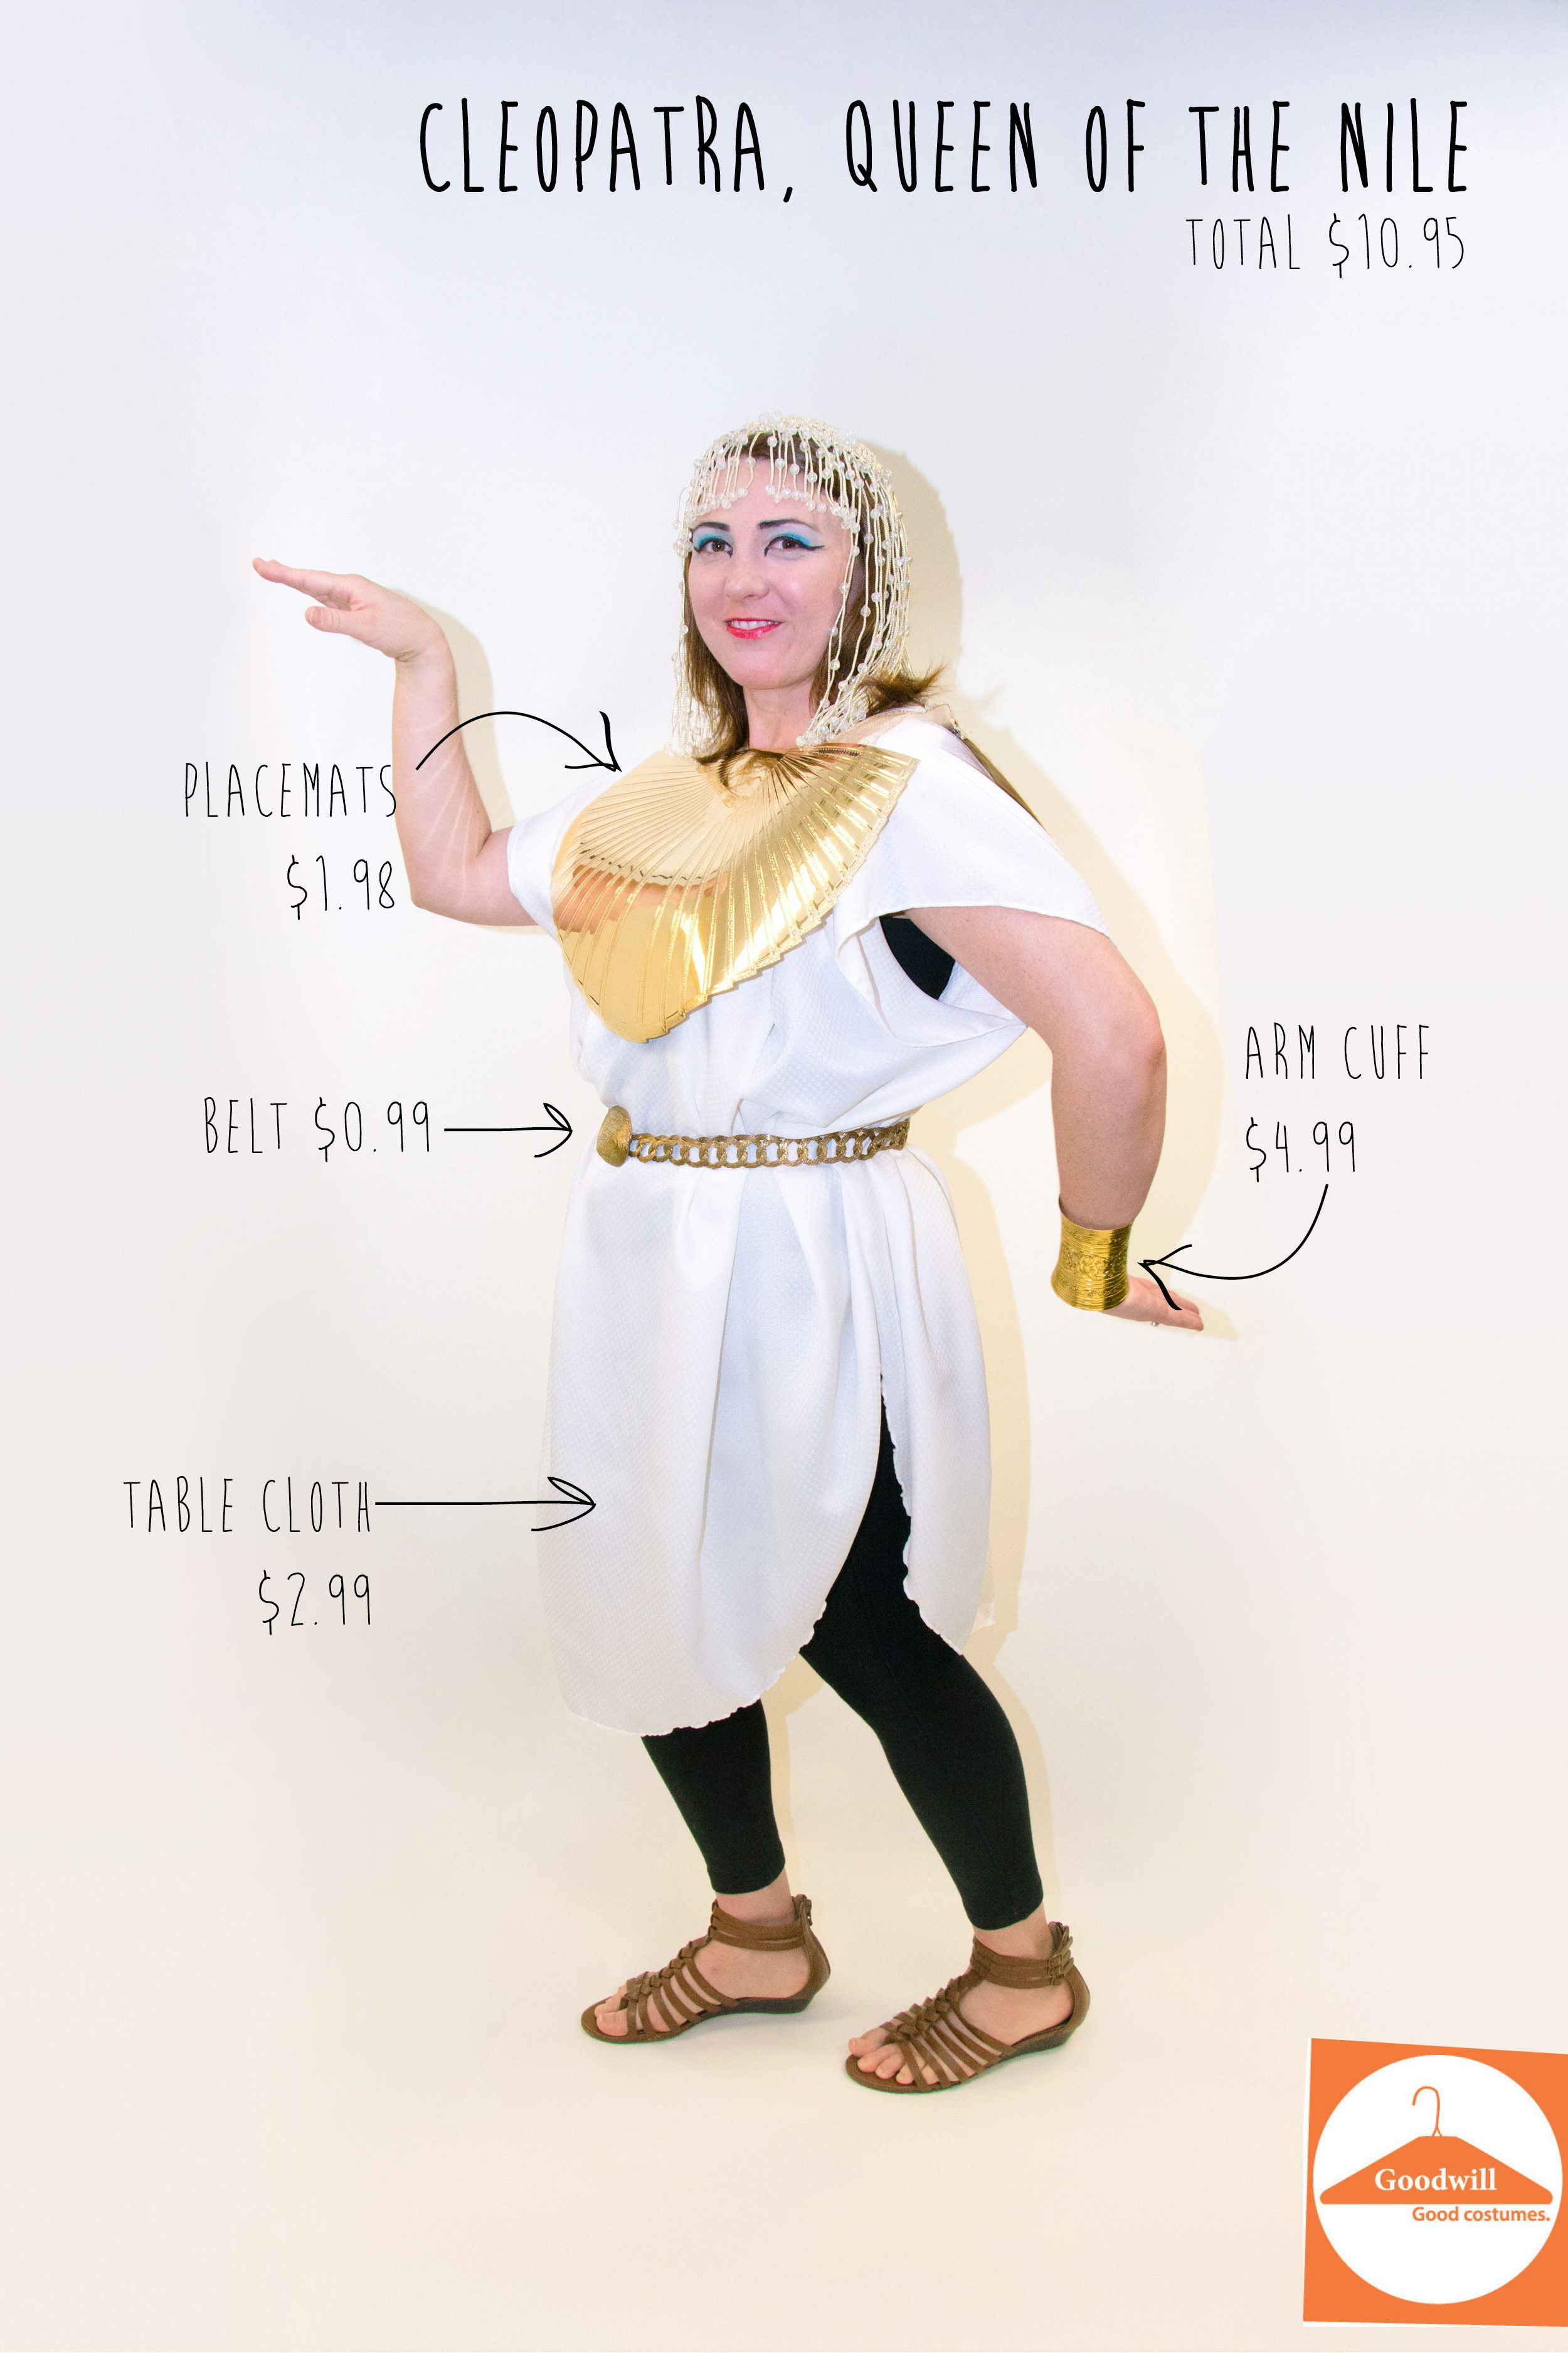 DIY Cleopatra costume from a table cloth and placemats, easy costume